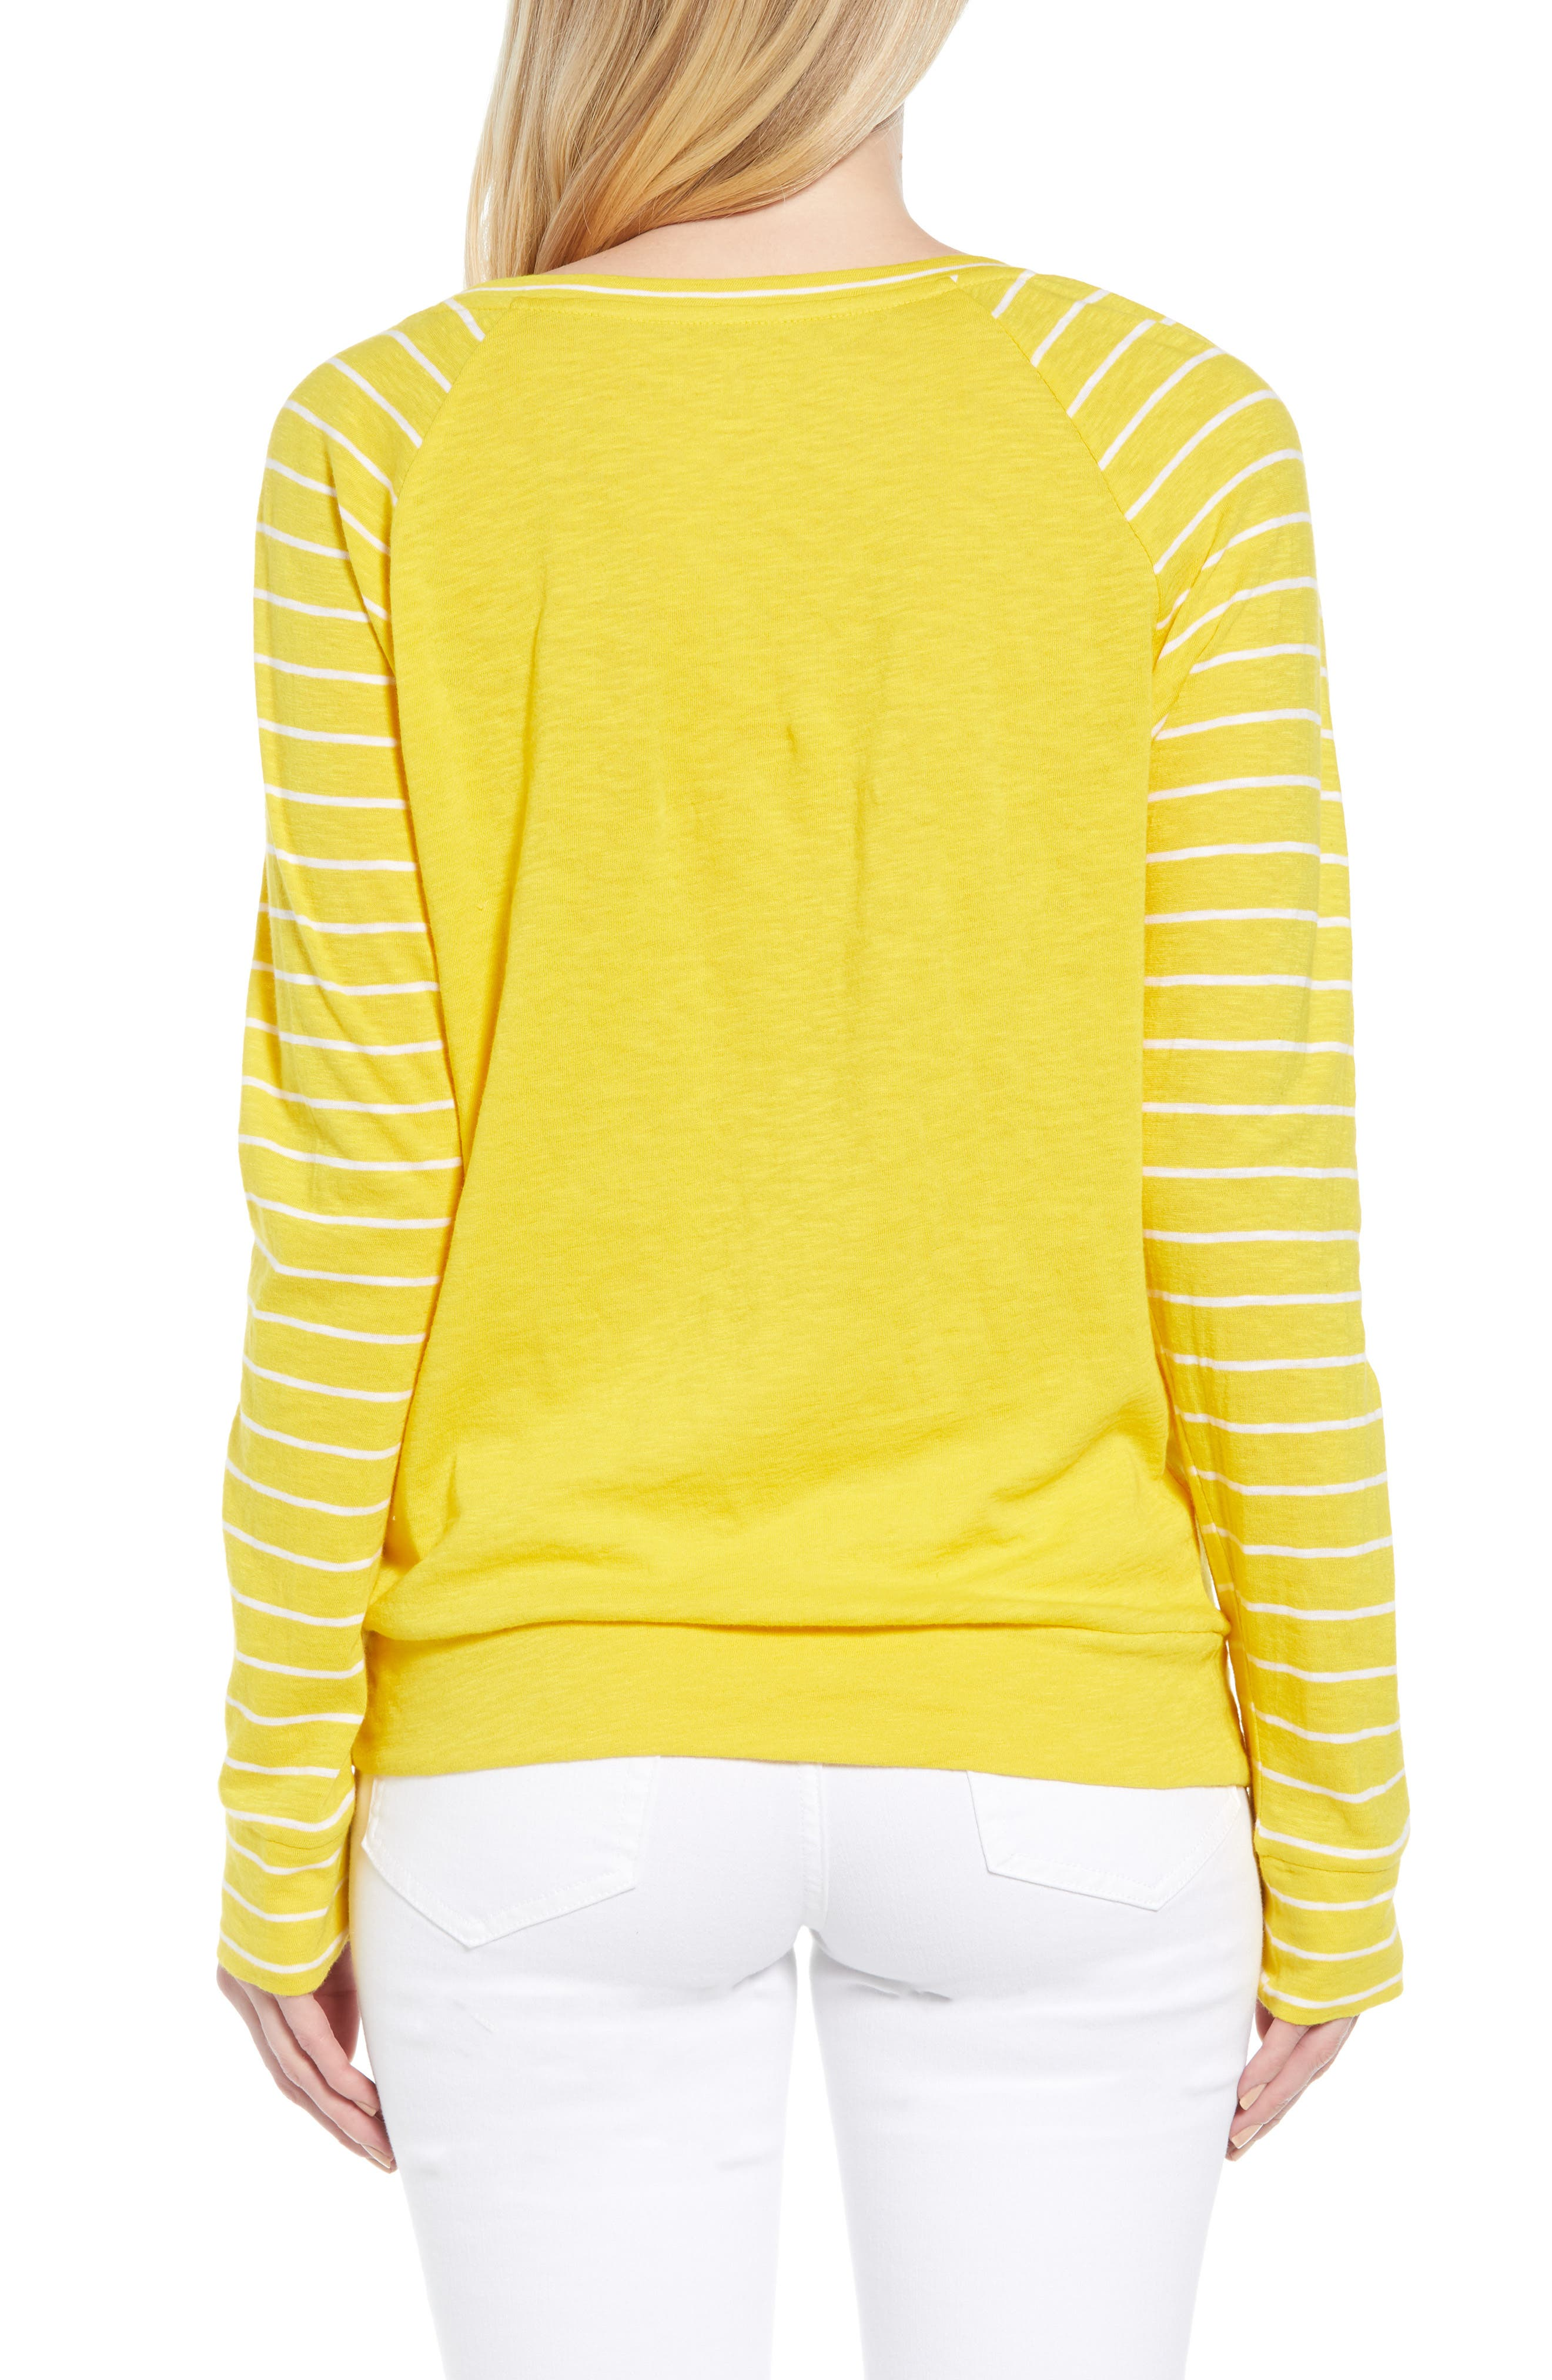 Lightweight Colorblock Cotton Tee,                             Alternate thumbnail 25, color,                             Yellow- White Lukah Combo